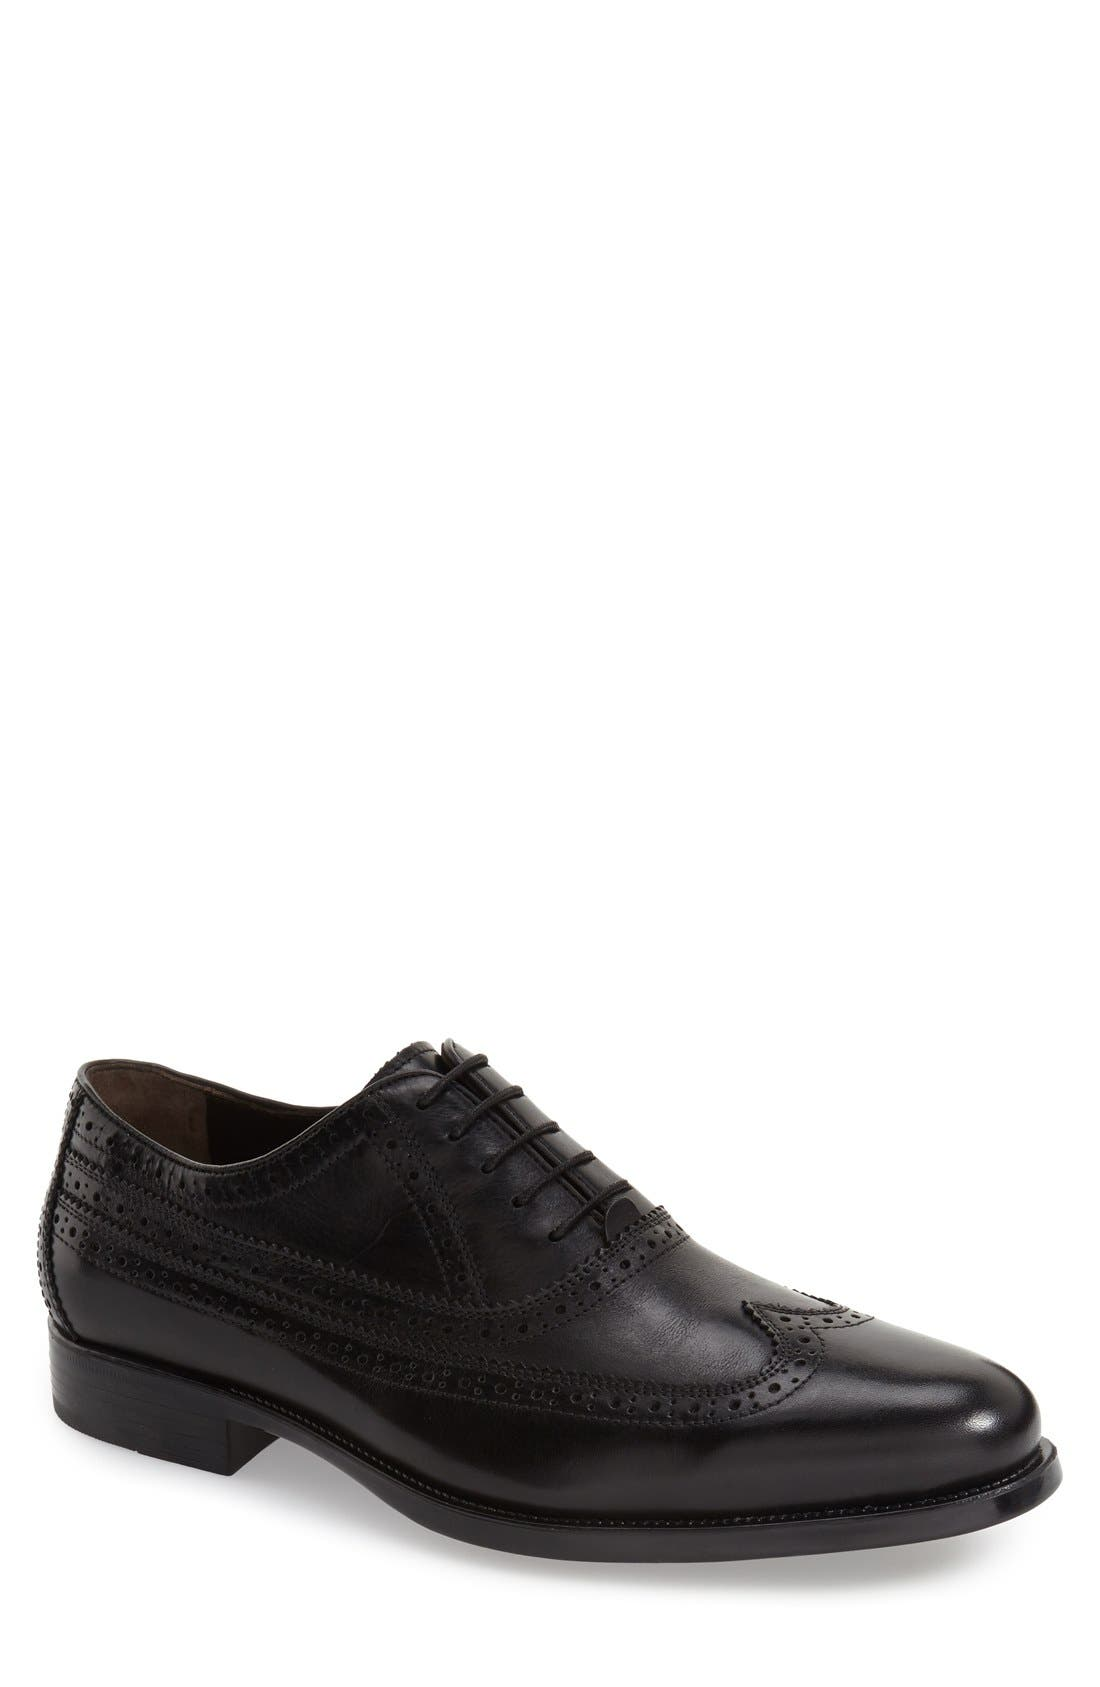 Alternate Image 1 Selected - Johnston & Murphy 'Duvall' Wingtip (Men)